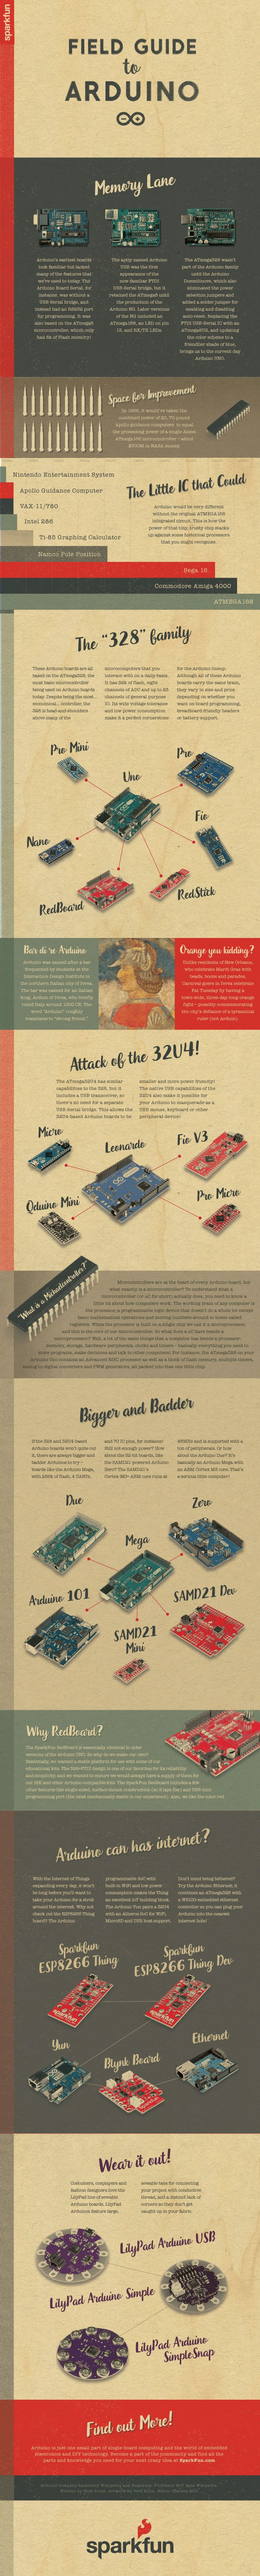 #IoT The Field Guide to Arduino %desc